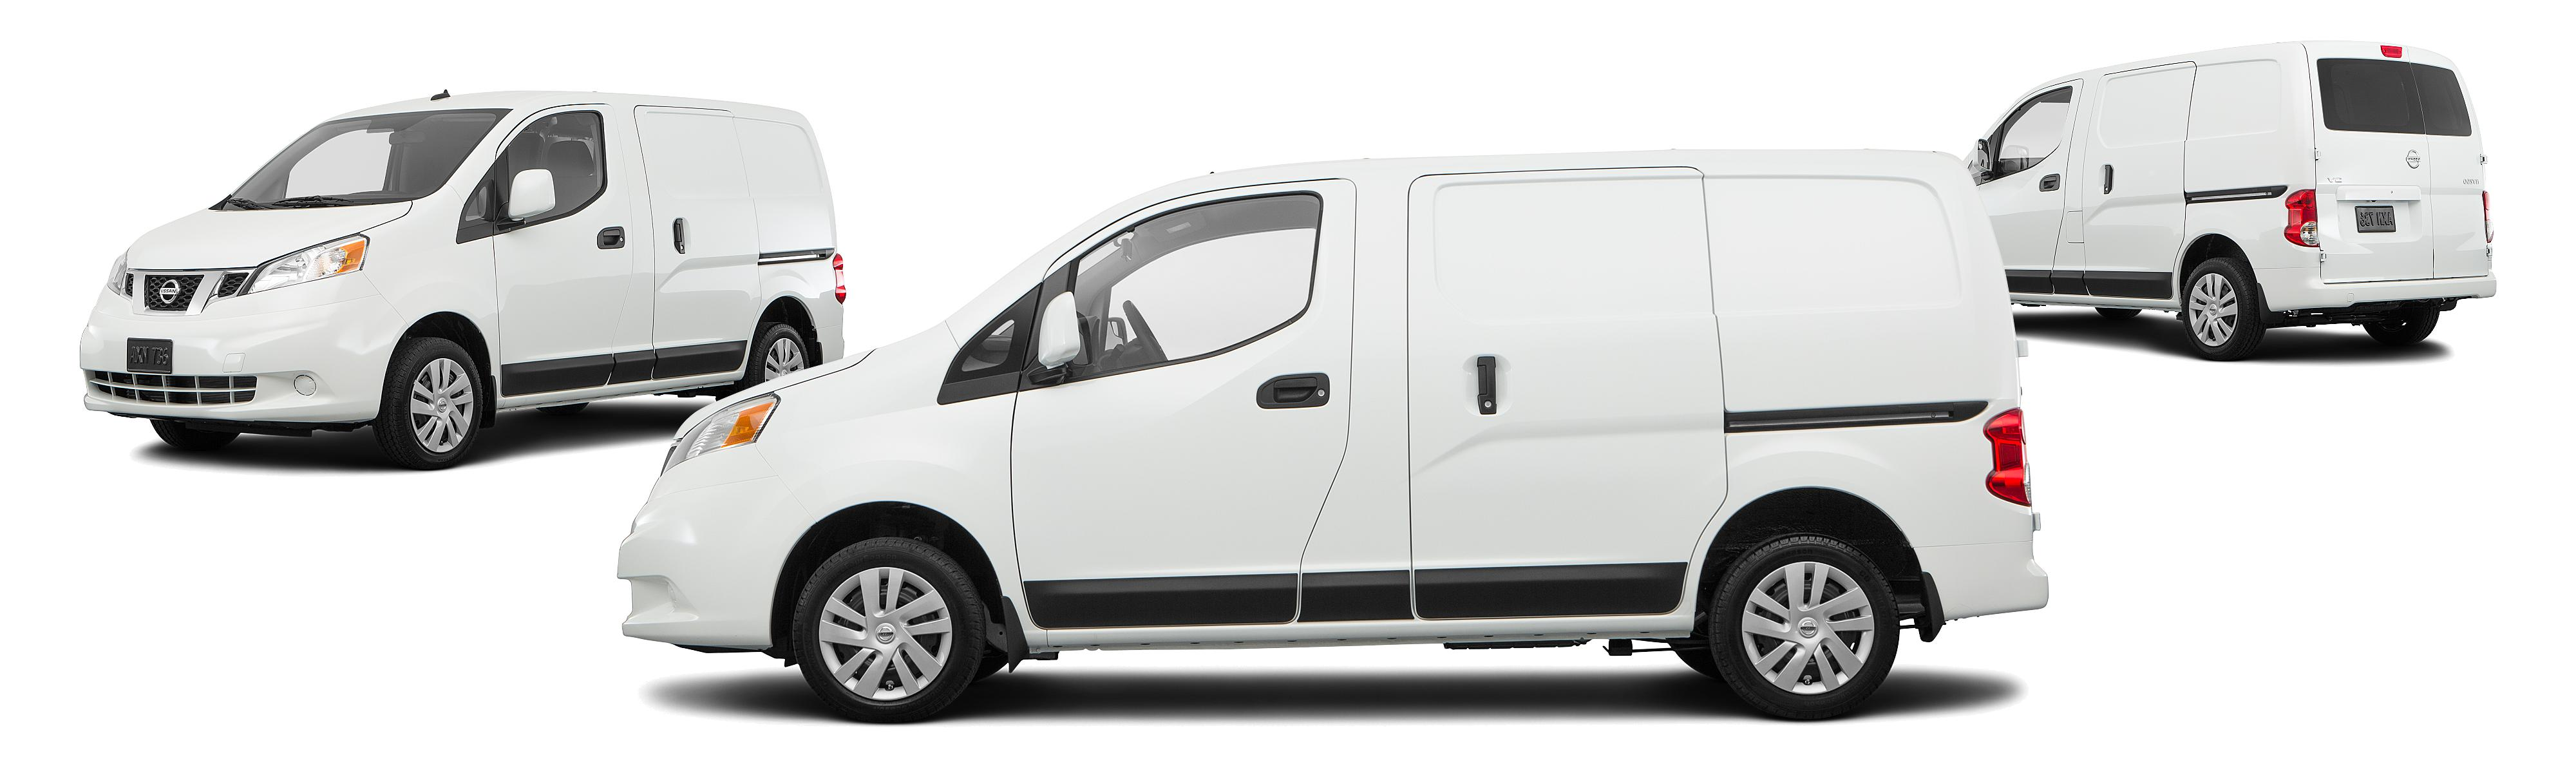 2016 Nissan Nv200 S 4dr Cargo Mini Van Research Groovecar